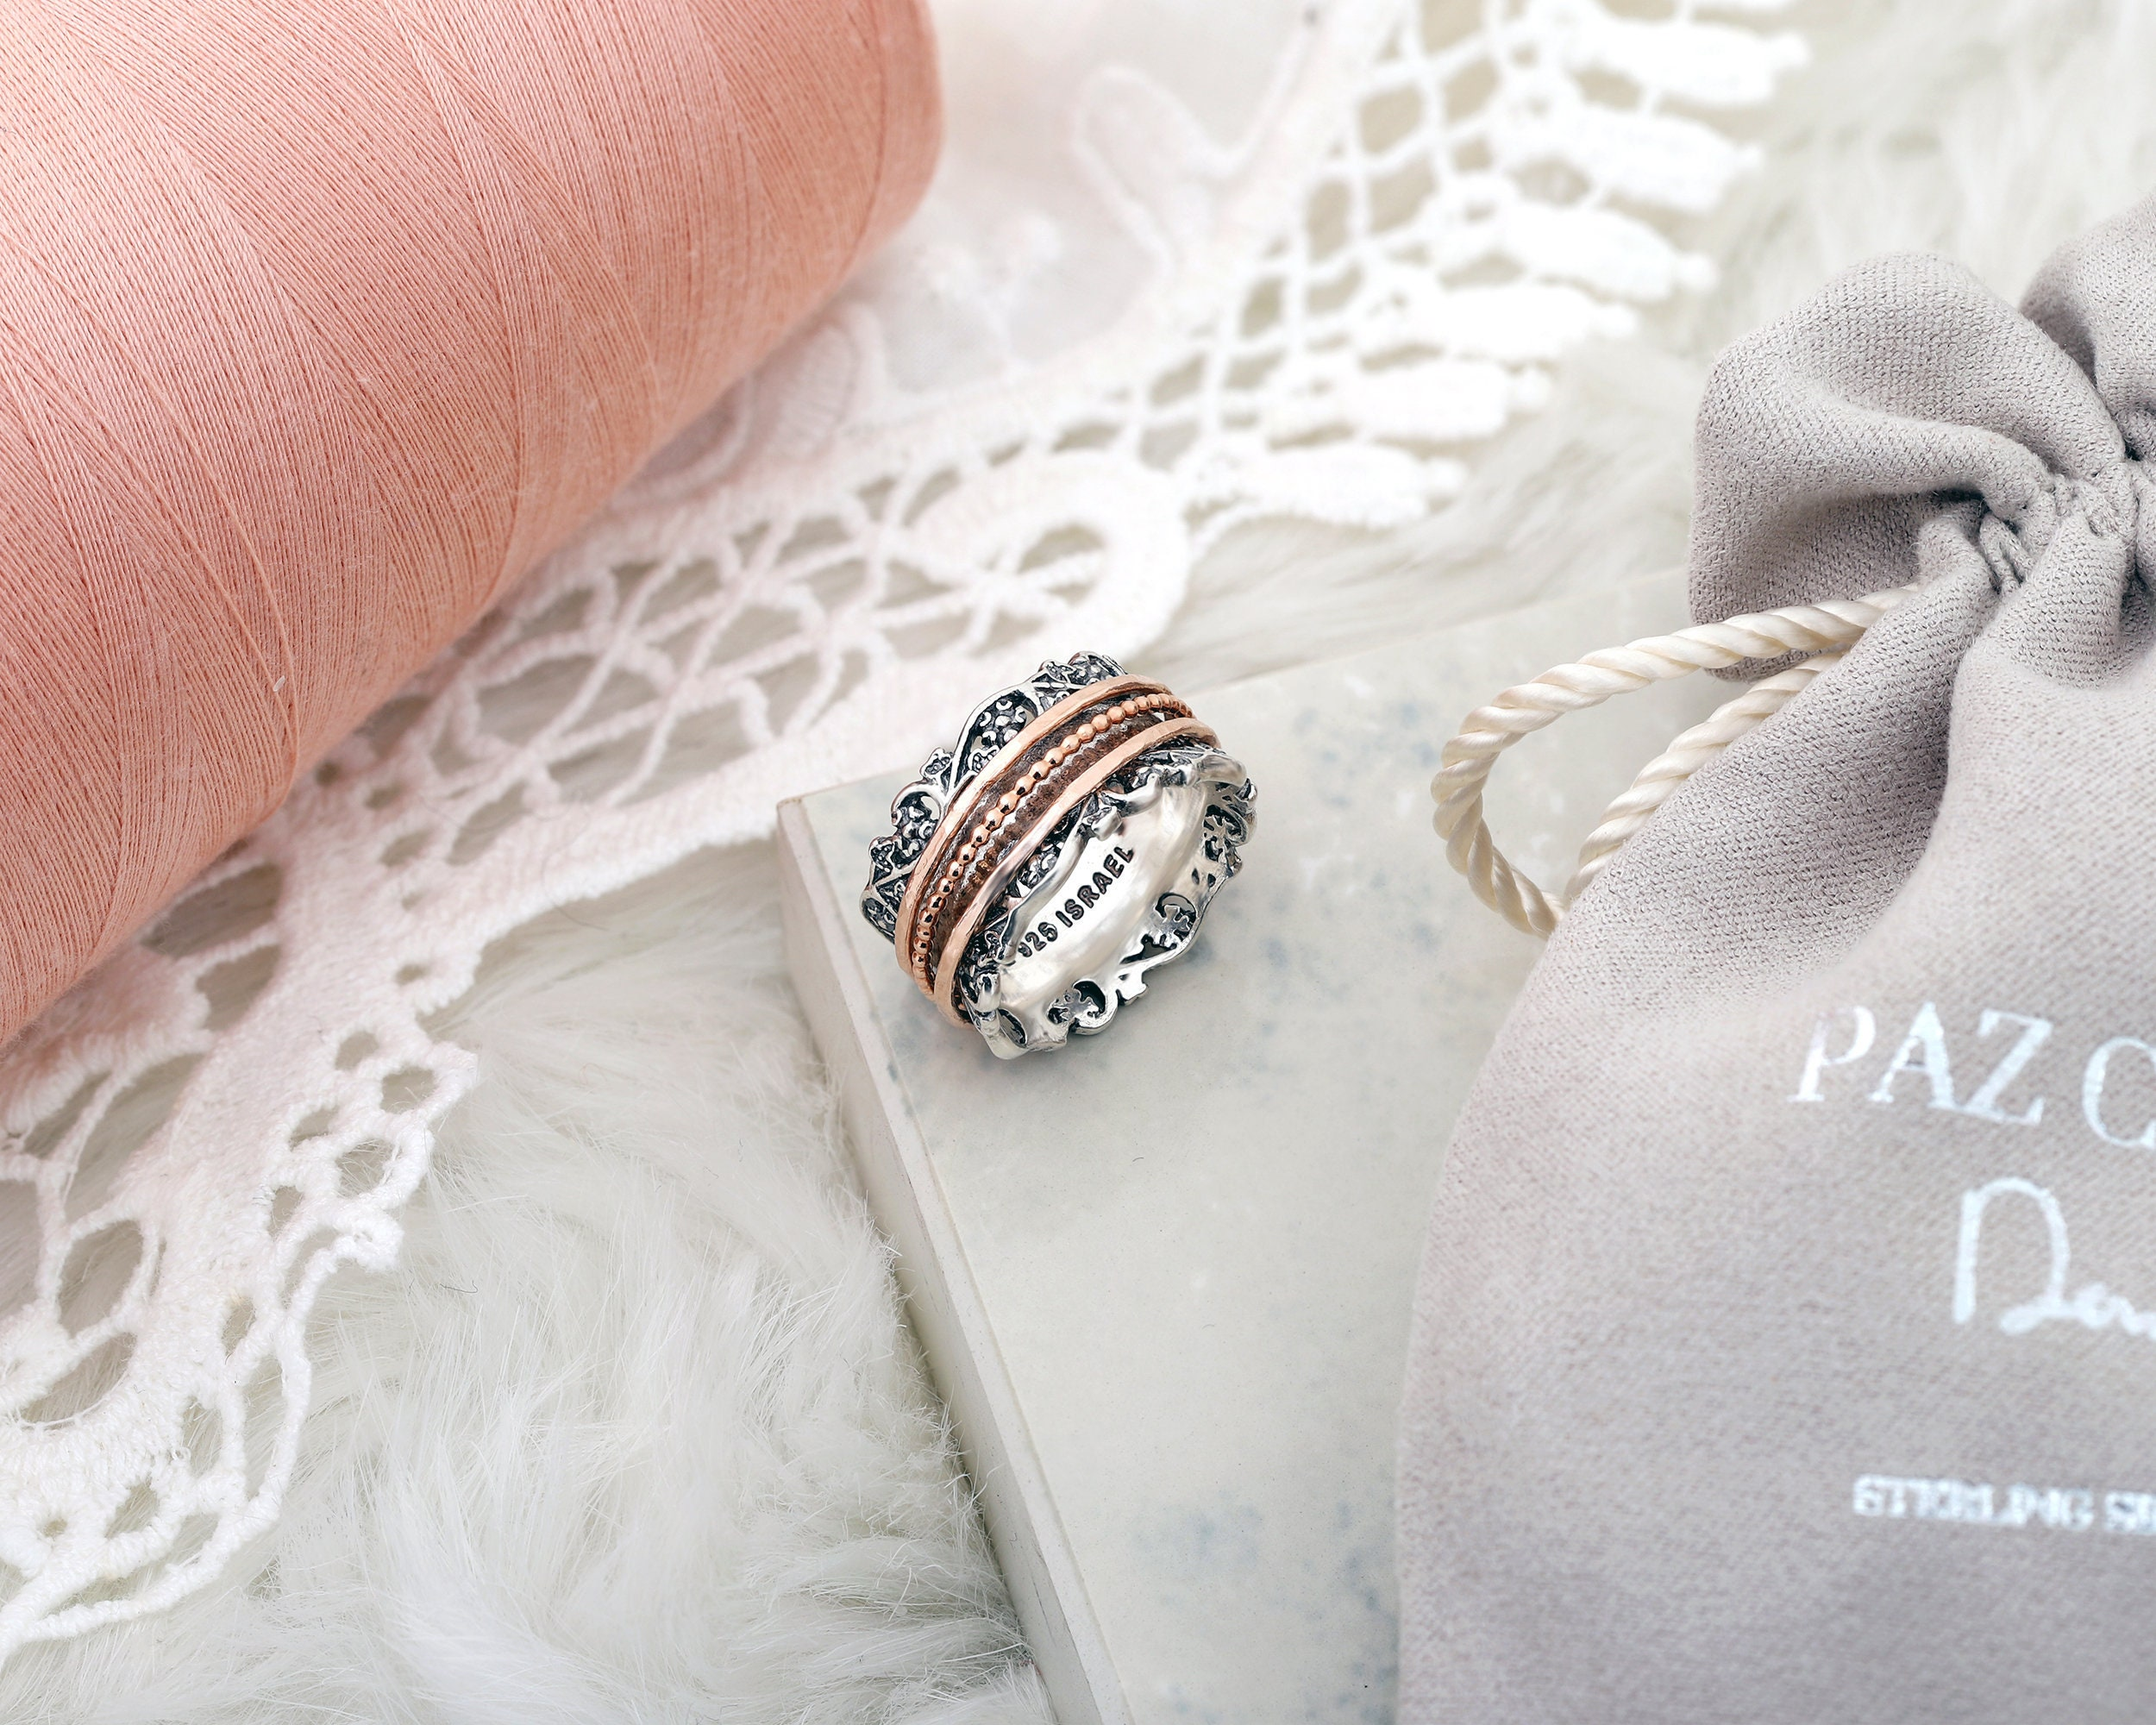 01803857ec283 Sterling Silver Meditation ring - Stress Reliever Gift -Vintage Art Deco  Engagement Ring - Rose Gold over Silver